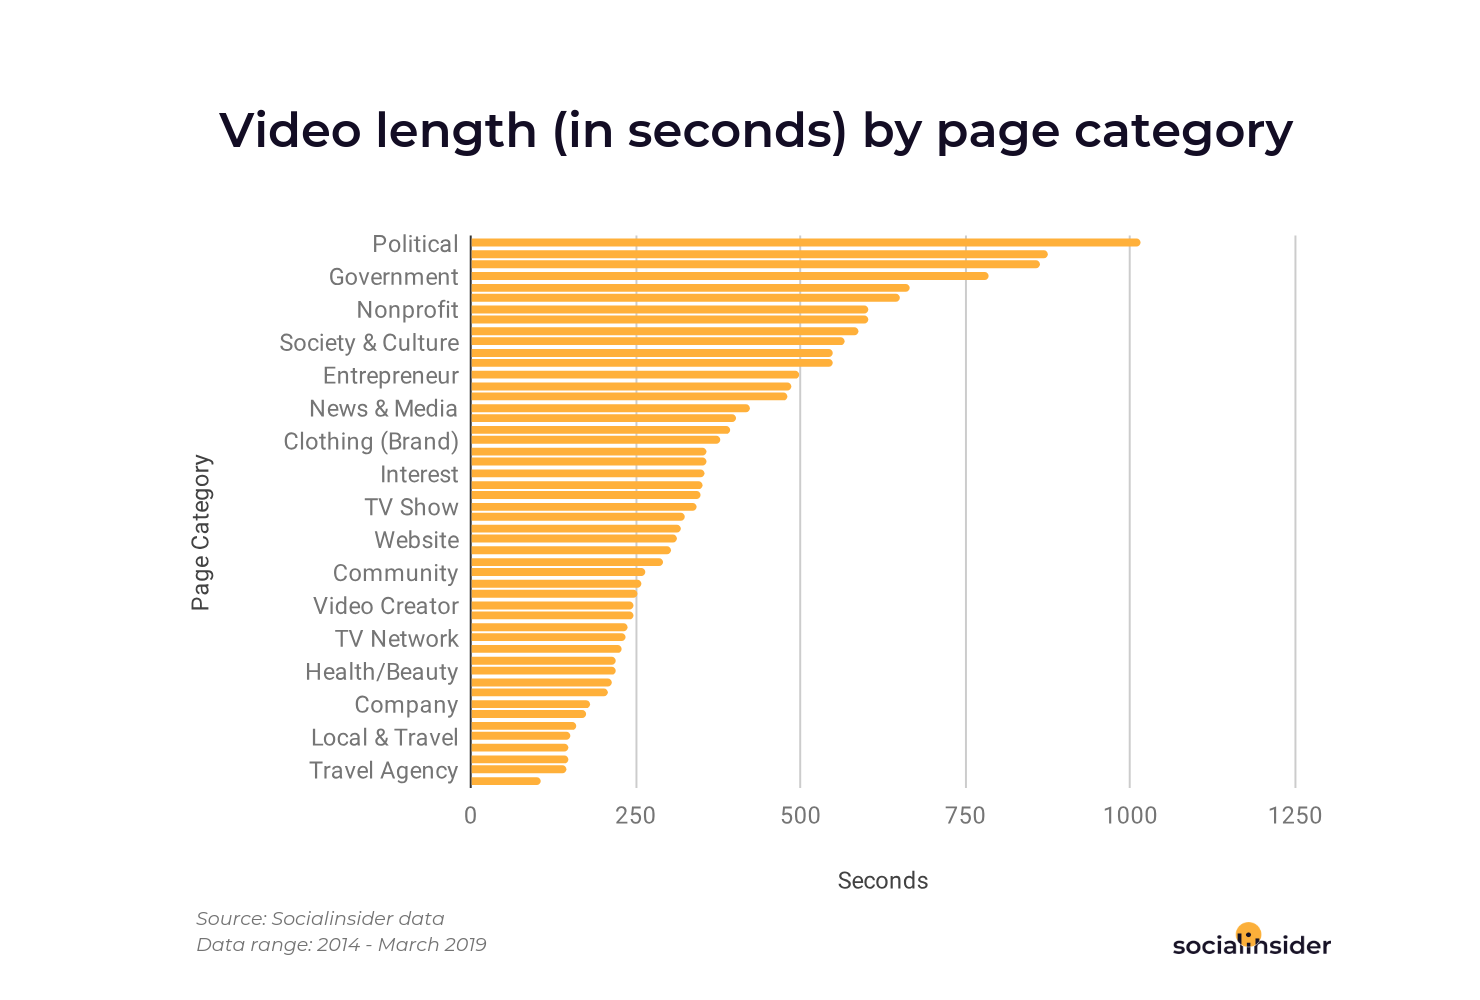 Video length (in seconds) by page category